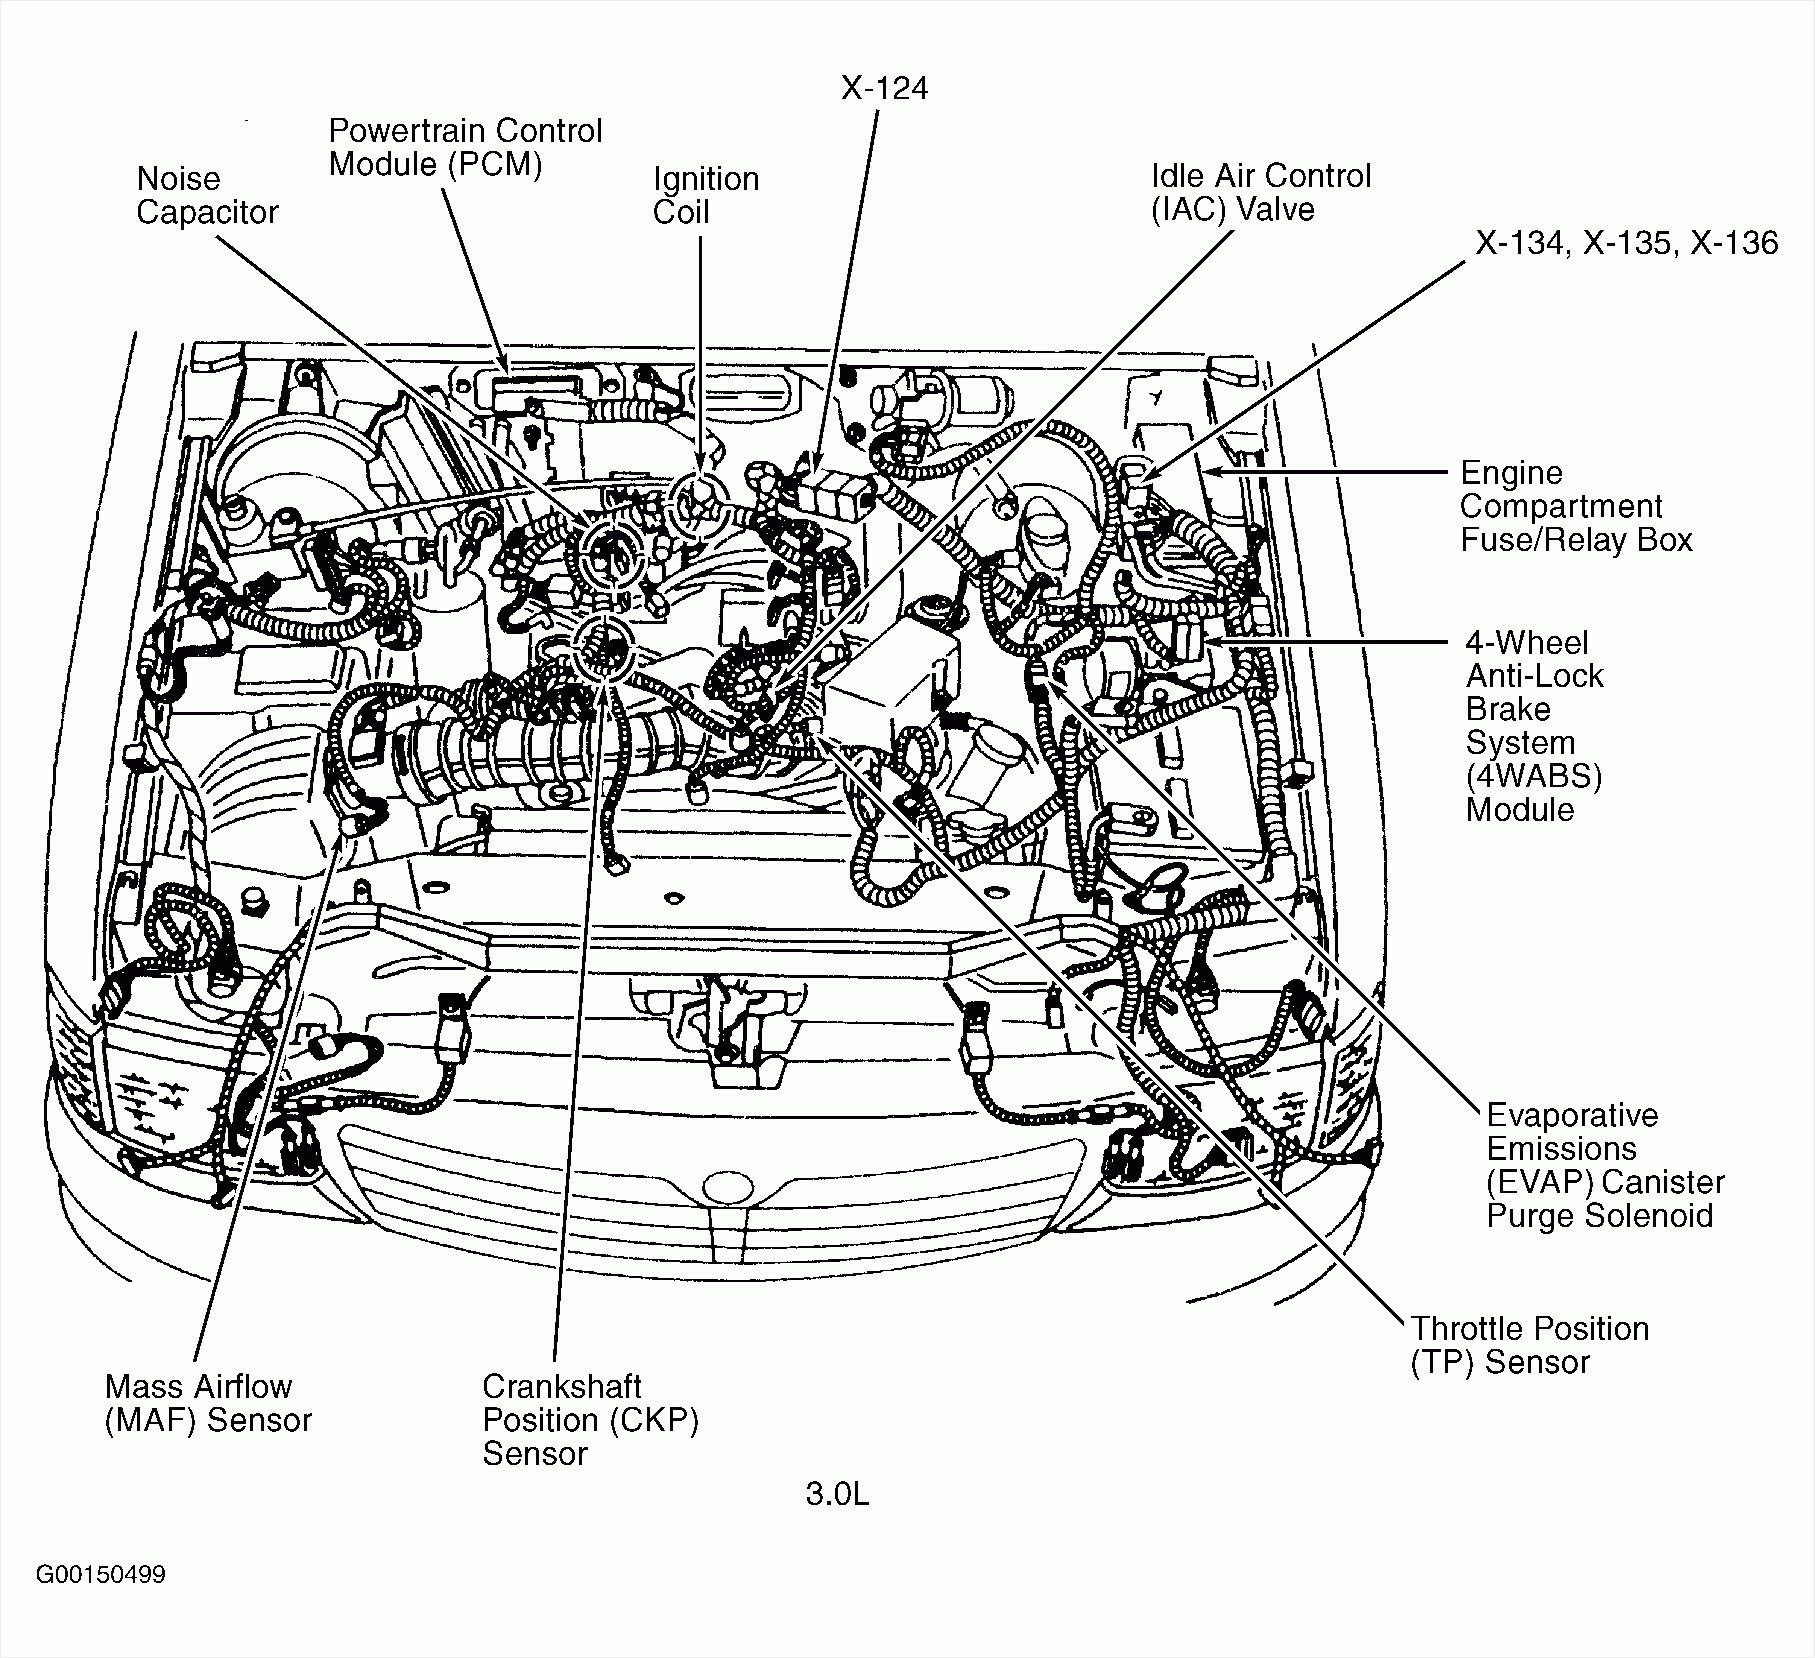 2004 Kia Sedona Wiring Diagram Solutions Engine Diagrams For Mazda 3